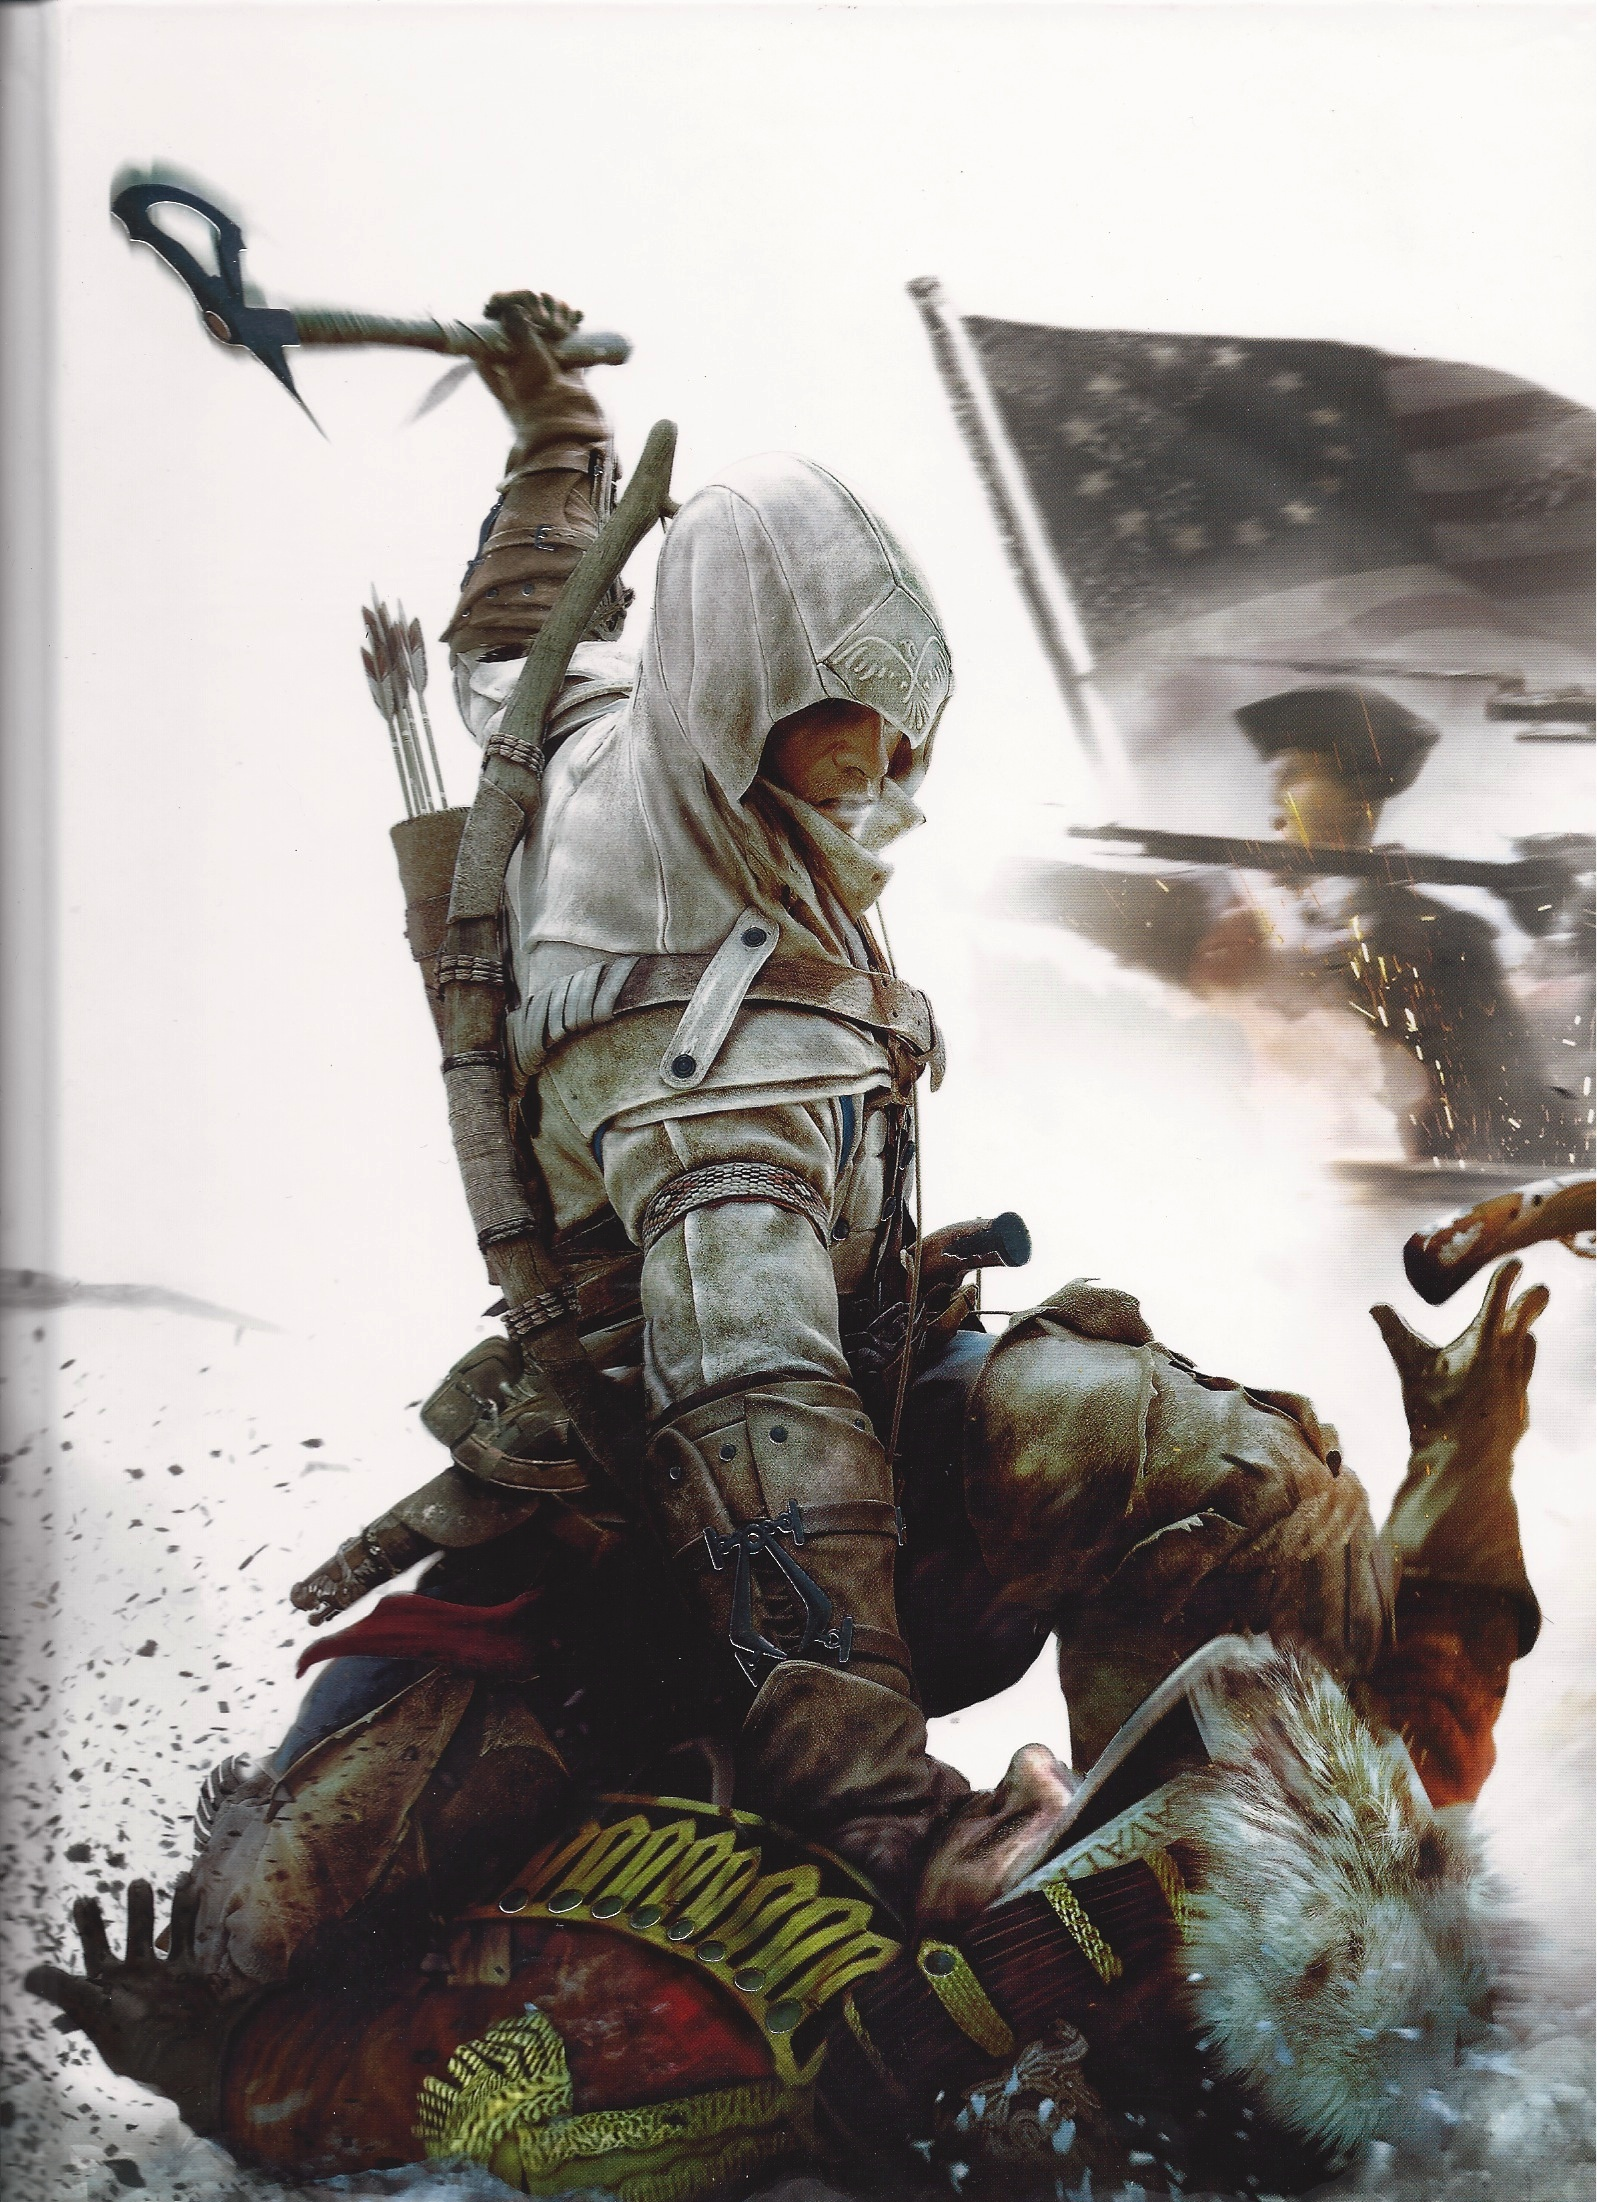 Assassin's Creed III strategy guide